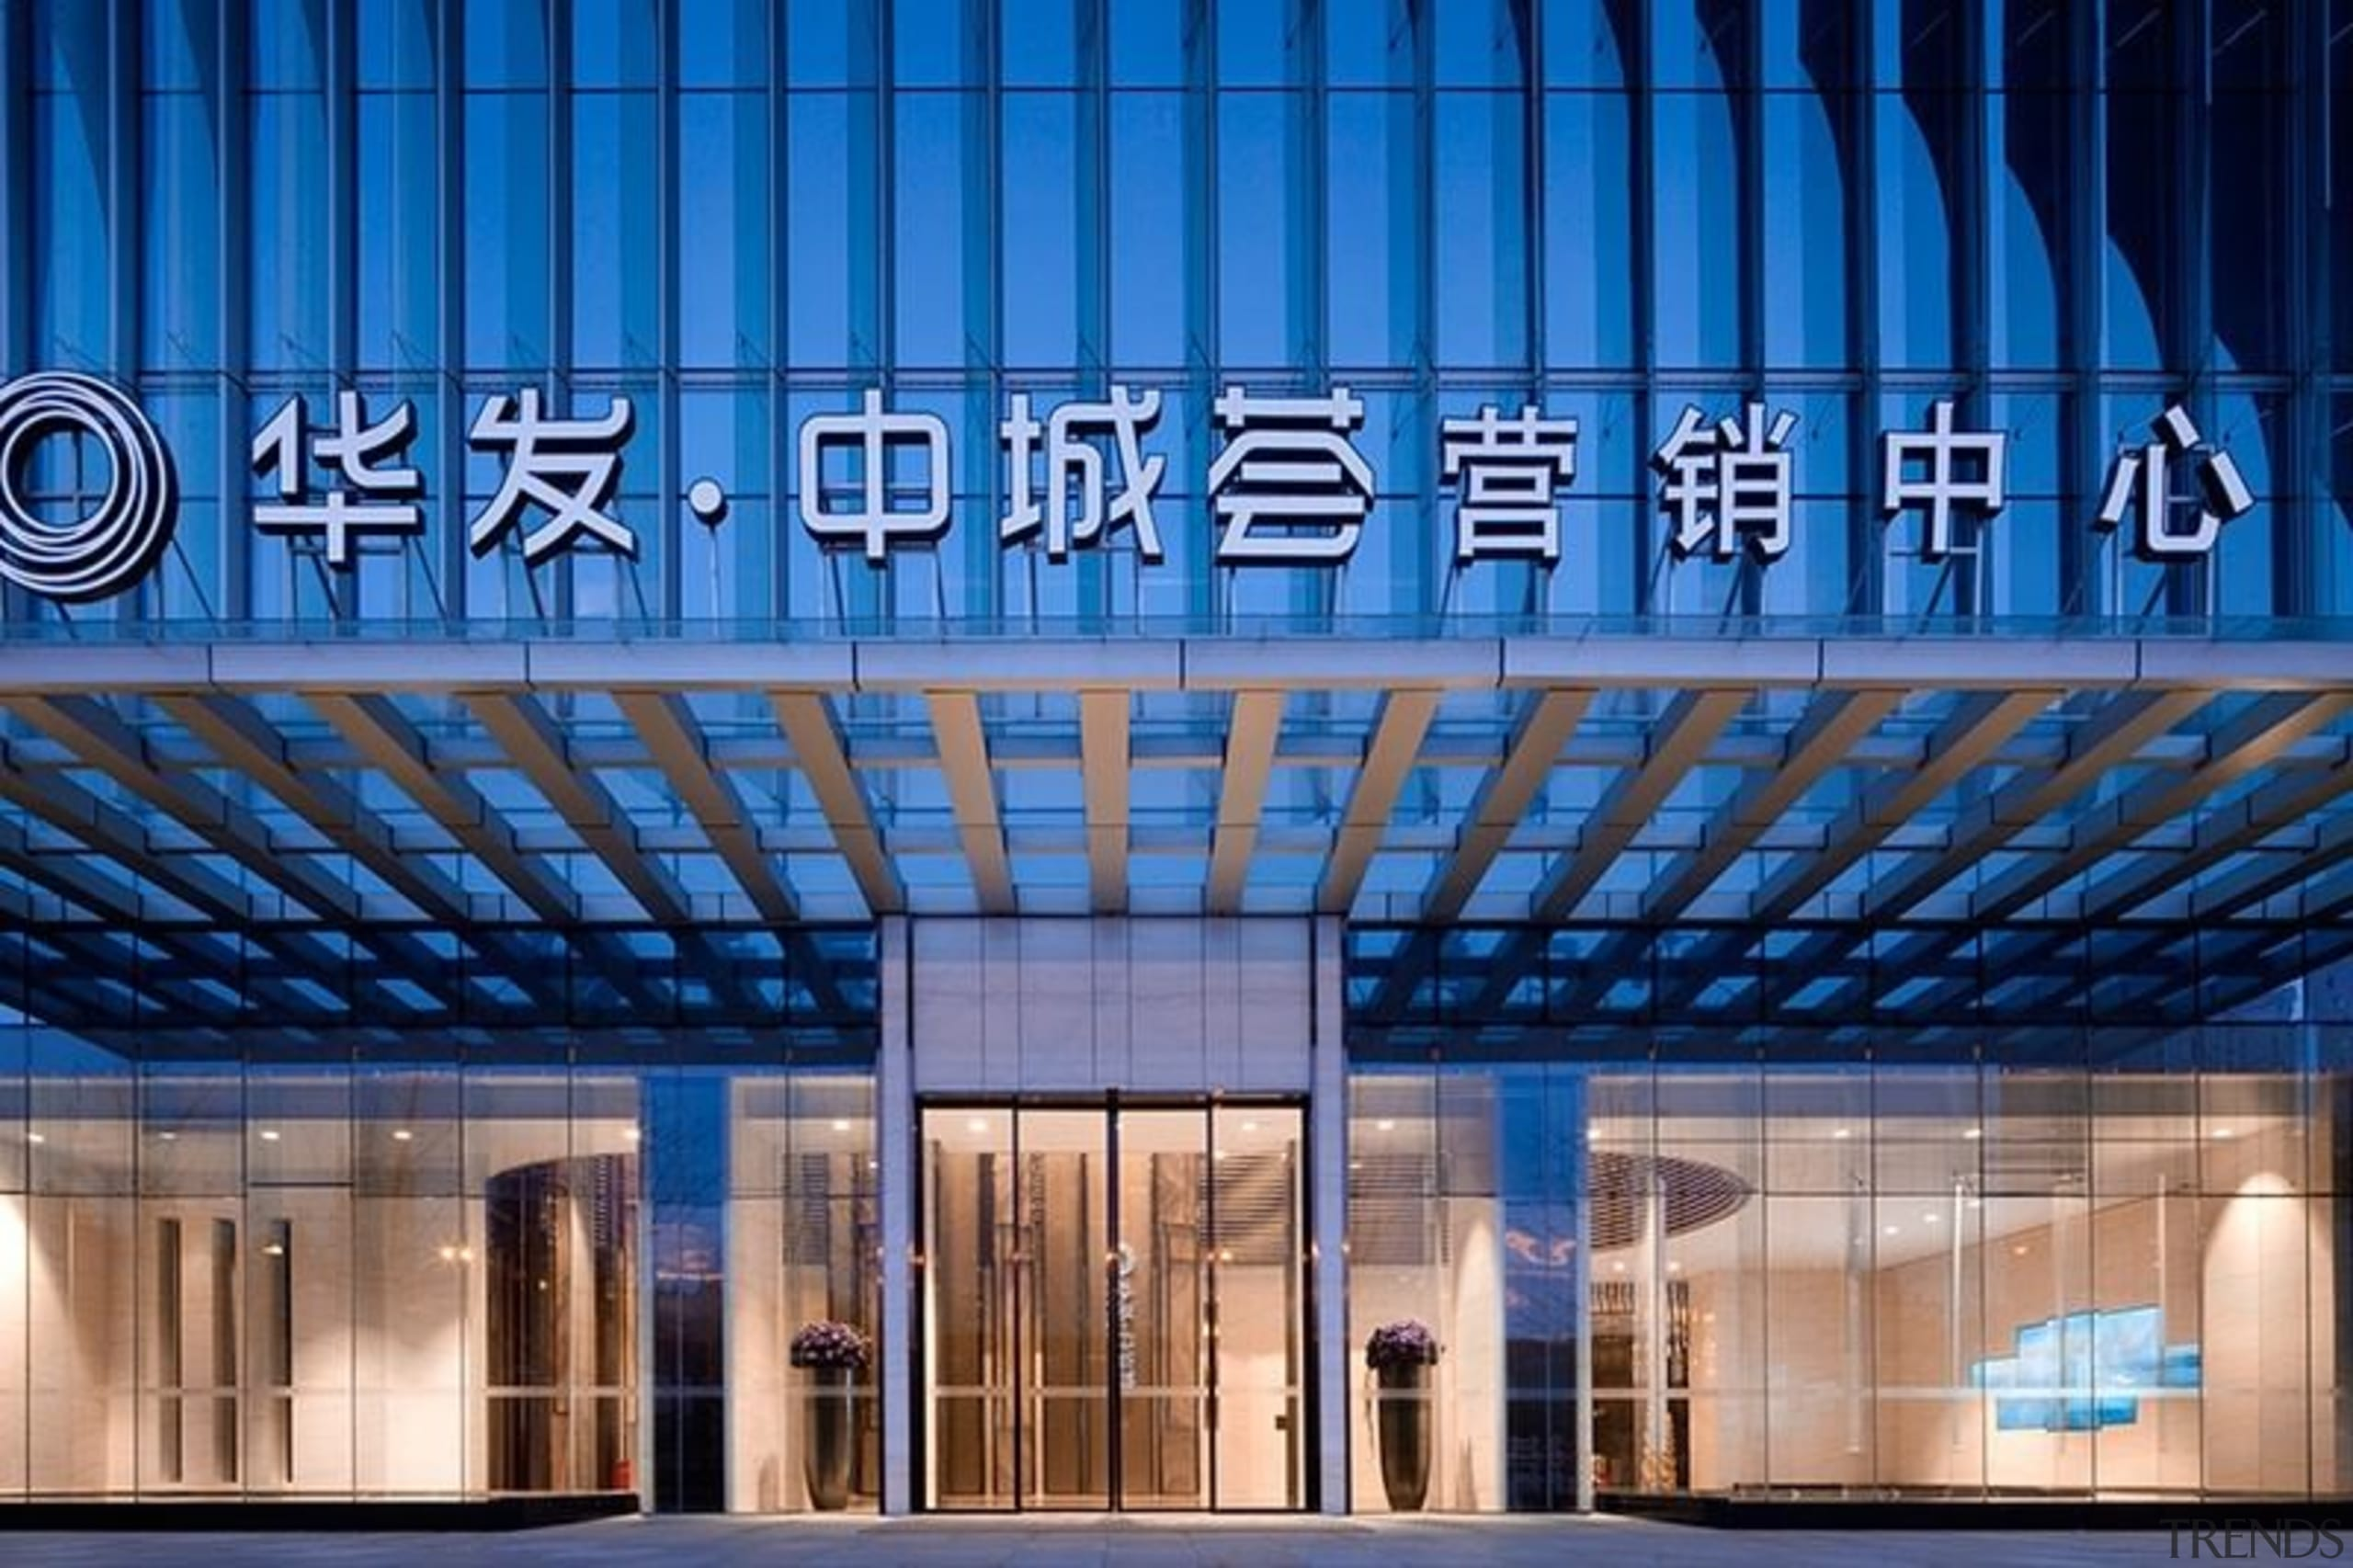 The entrance is understated, although you can glimpse architecture, building, commercial building, convention center, corporate headquarters, daylighting, facade, headquarters, leisure centre, structure, blue